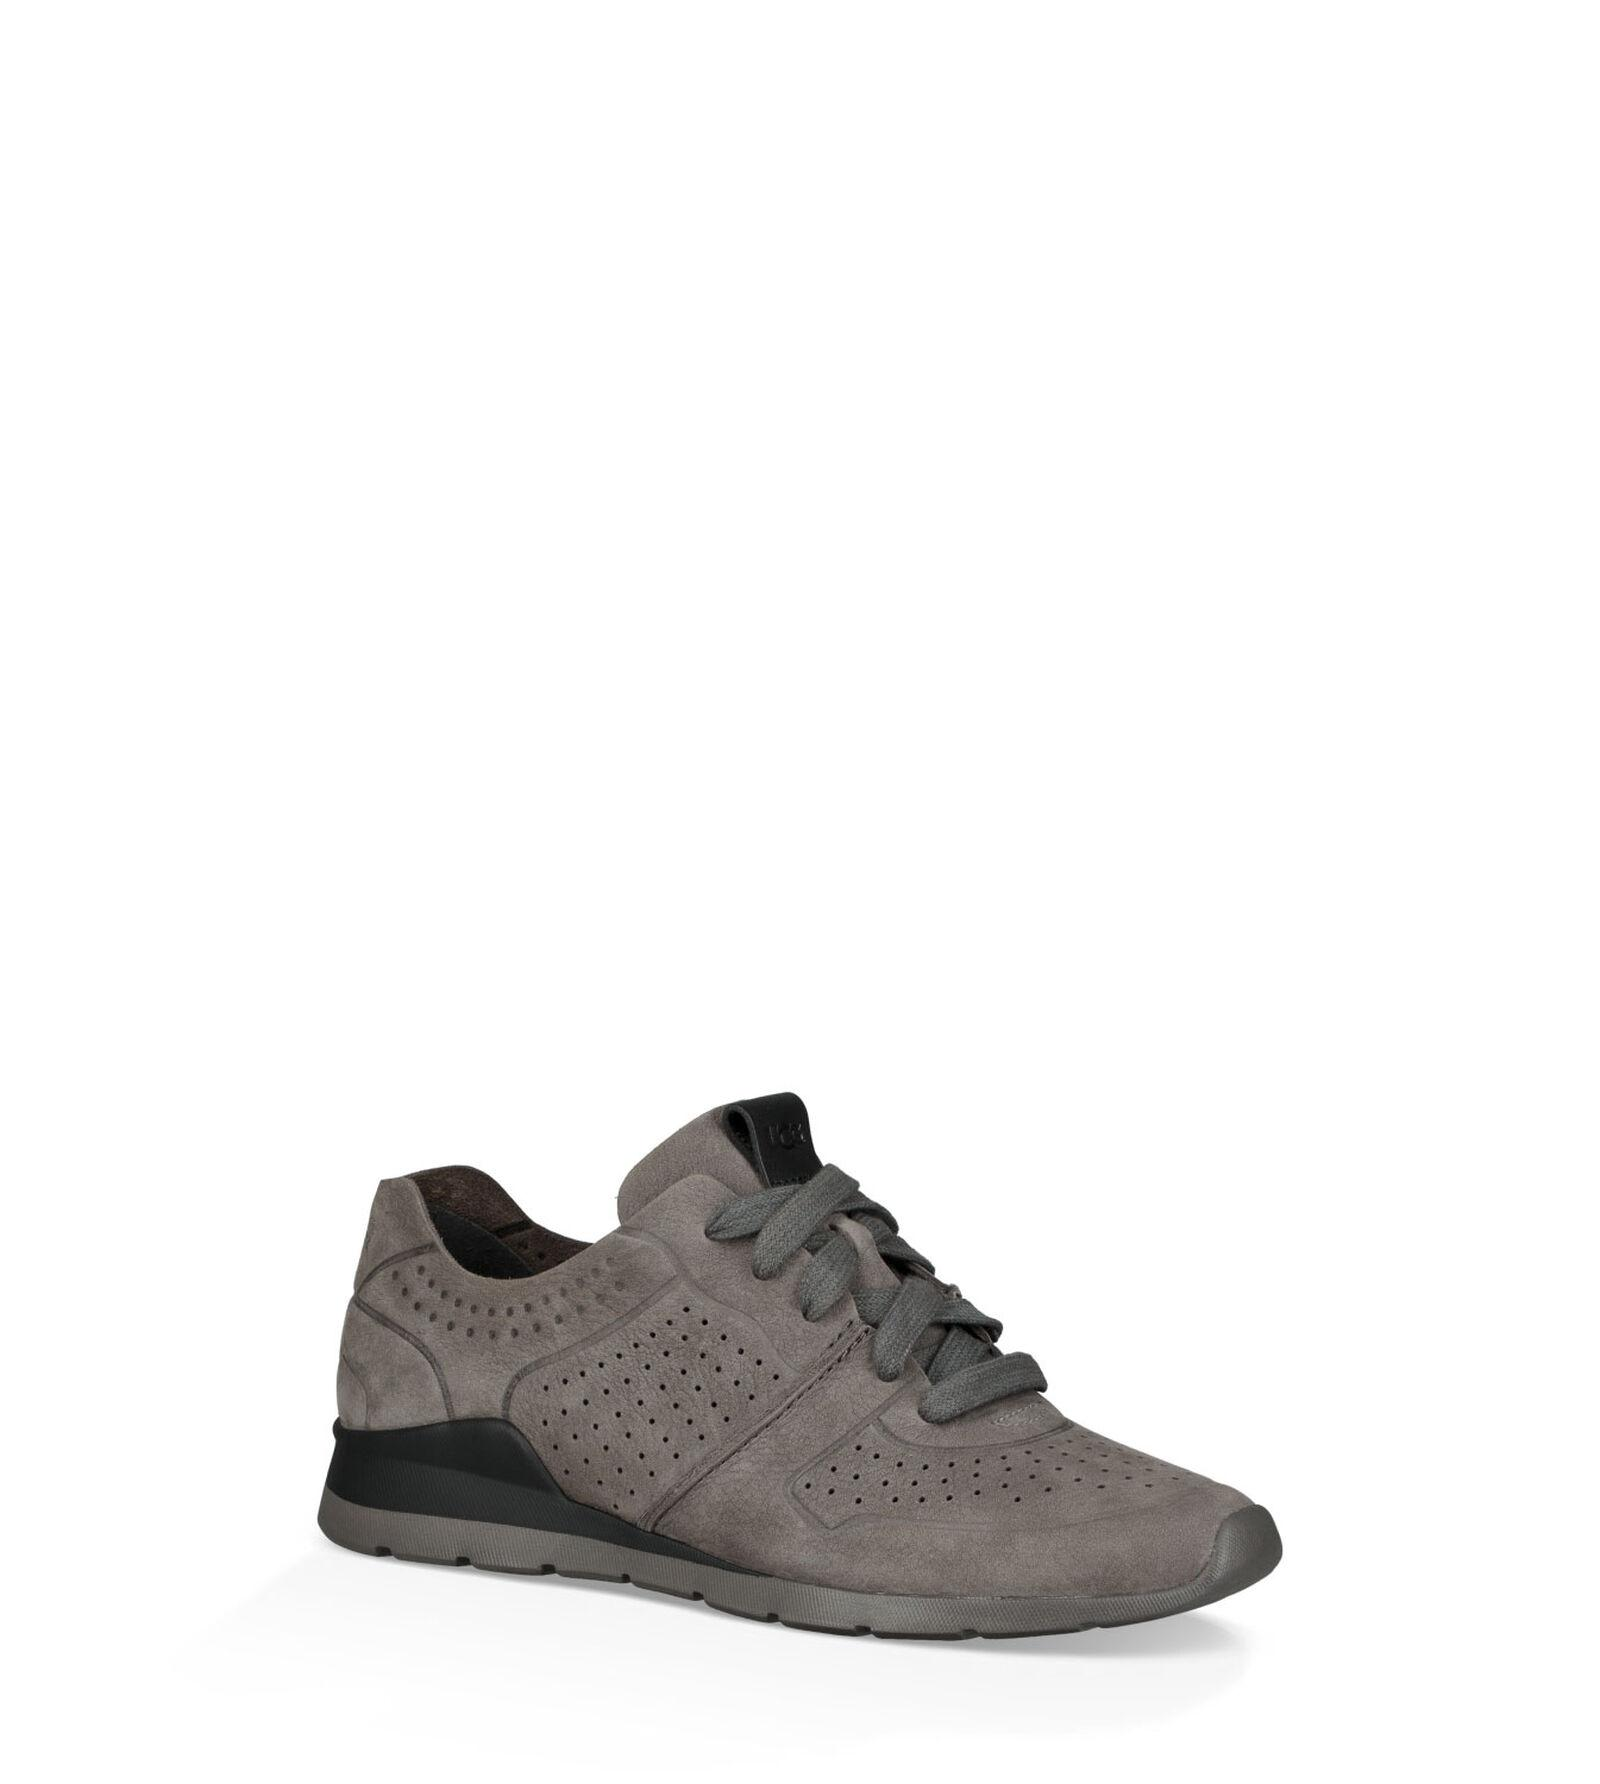 UGG Leather Tye Trainer in Charcoal (Grey)